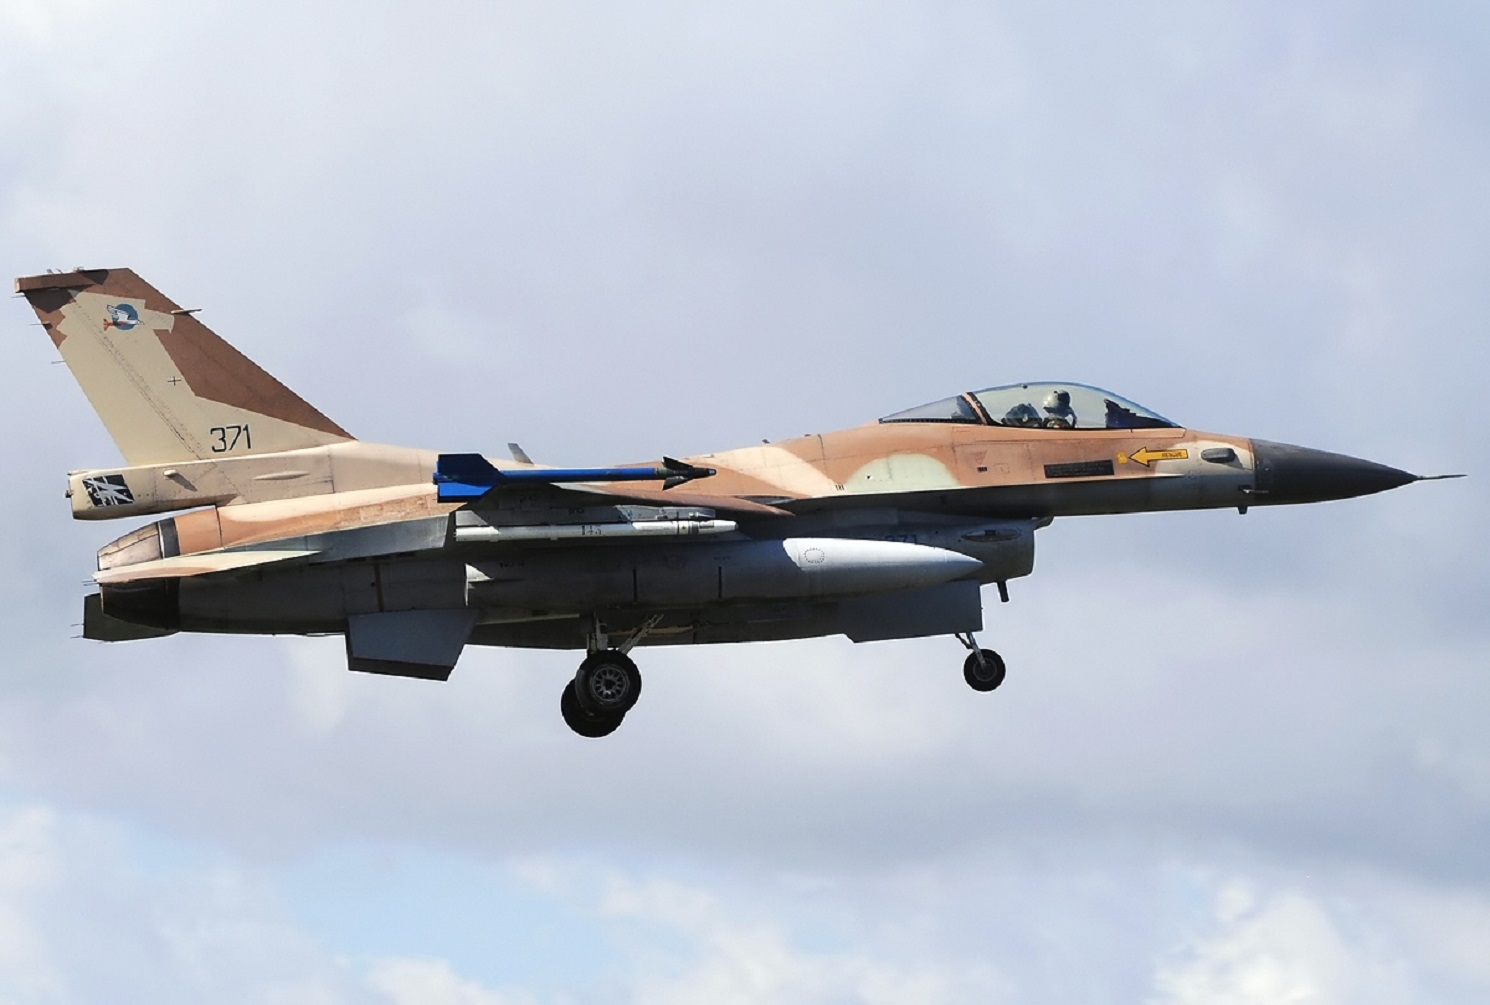 The Rampage Missile Might Be Israel's New Super Weapon